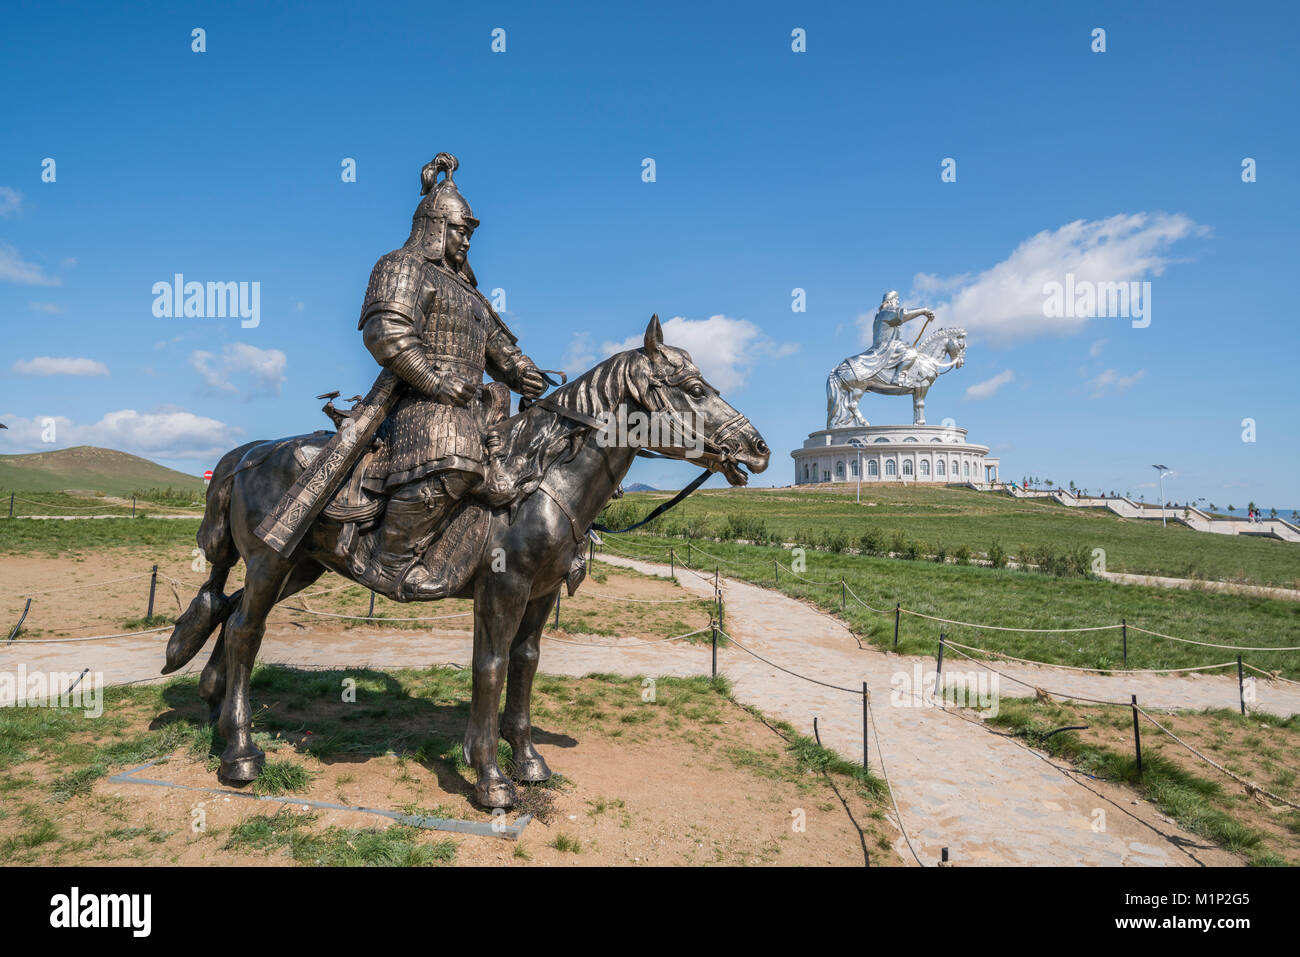 Statue of a Mongolian Empire warrior and Genghis Khan Statue Complex in the background, Erdene, Tov province, Mongolia, - Stock Image